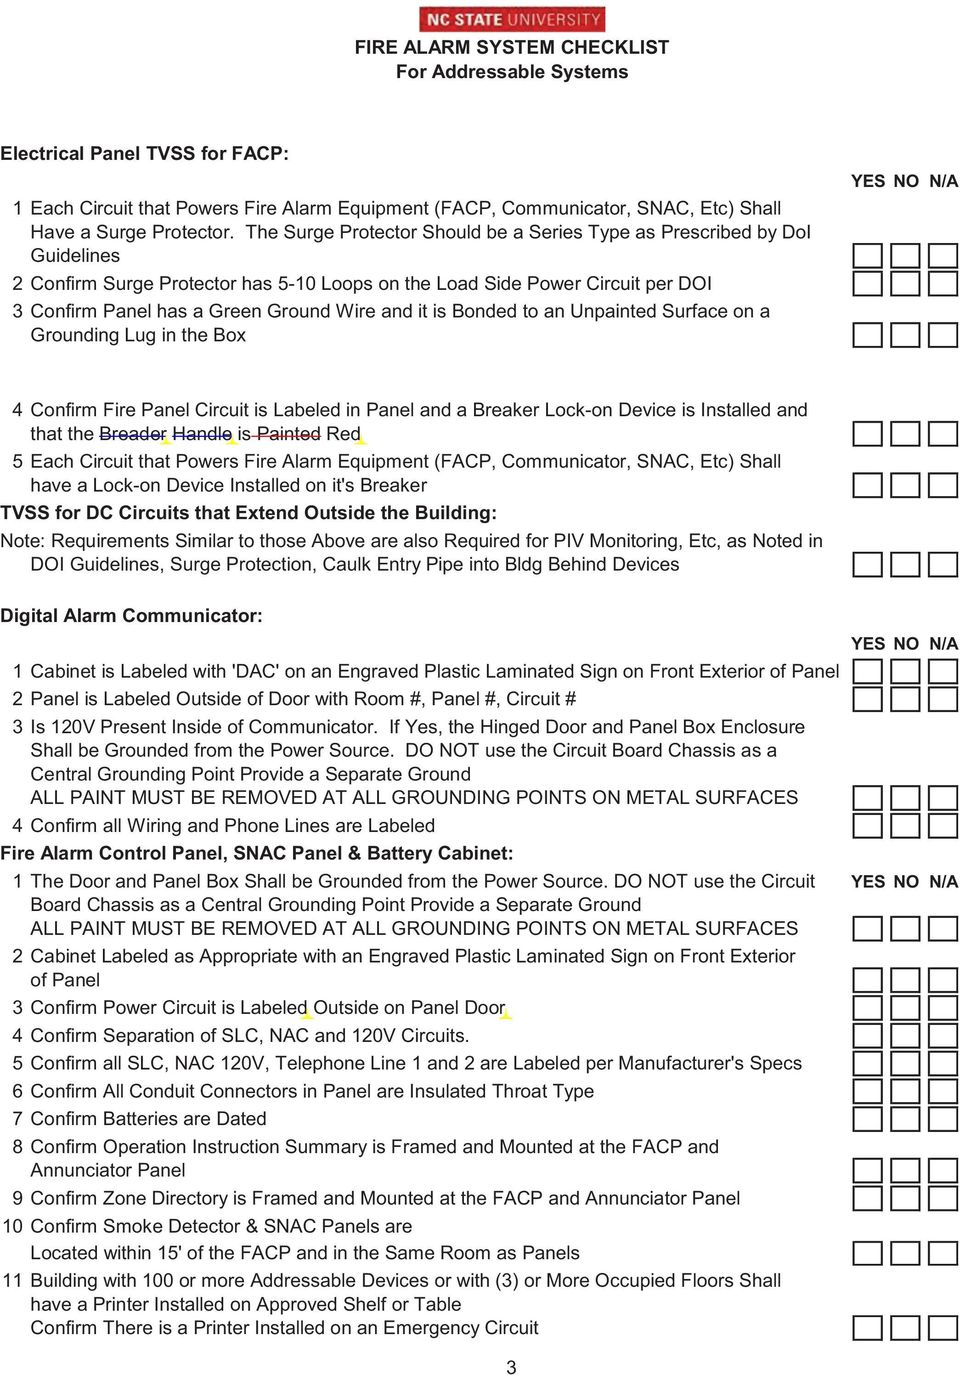 Fire Alarm System Checklist For Addressable Systems Prior To Diagram It Is Bonded An Unpainted Surface On A Grounding Lug In The Box 4 Confirm